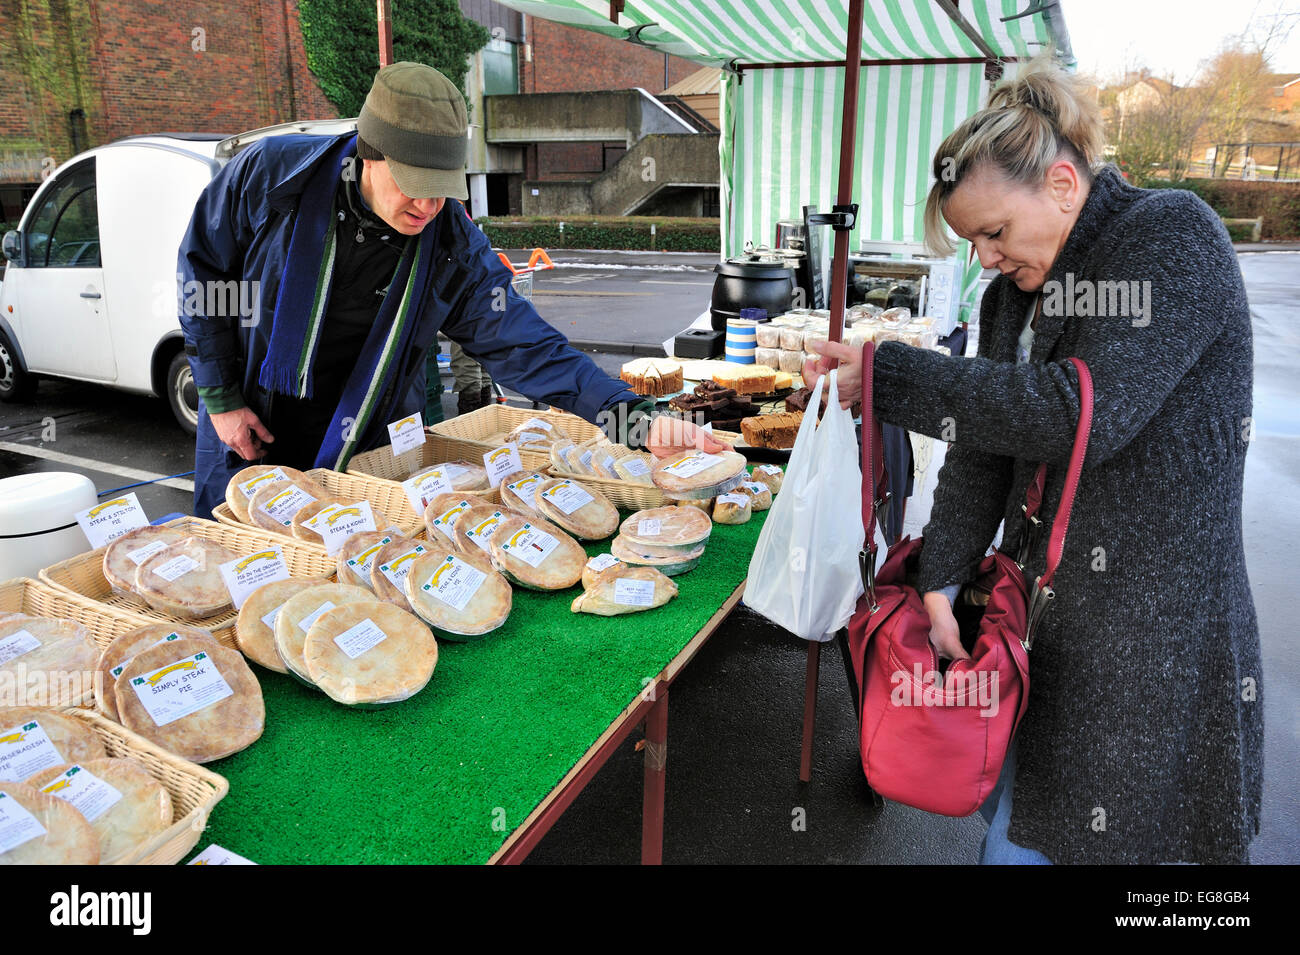 meat pies for sale at a local farmers market - Stock Image